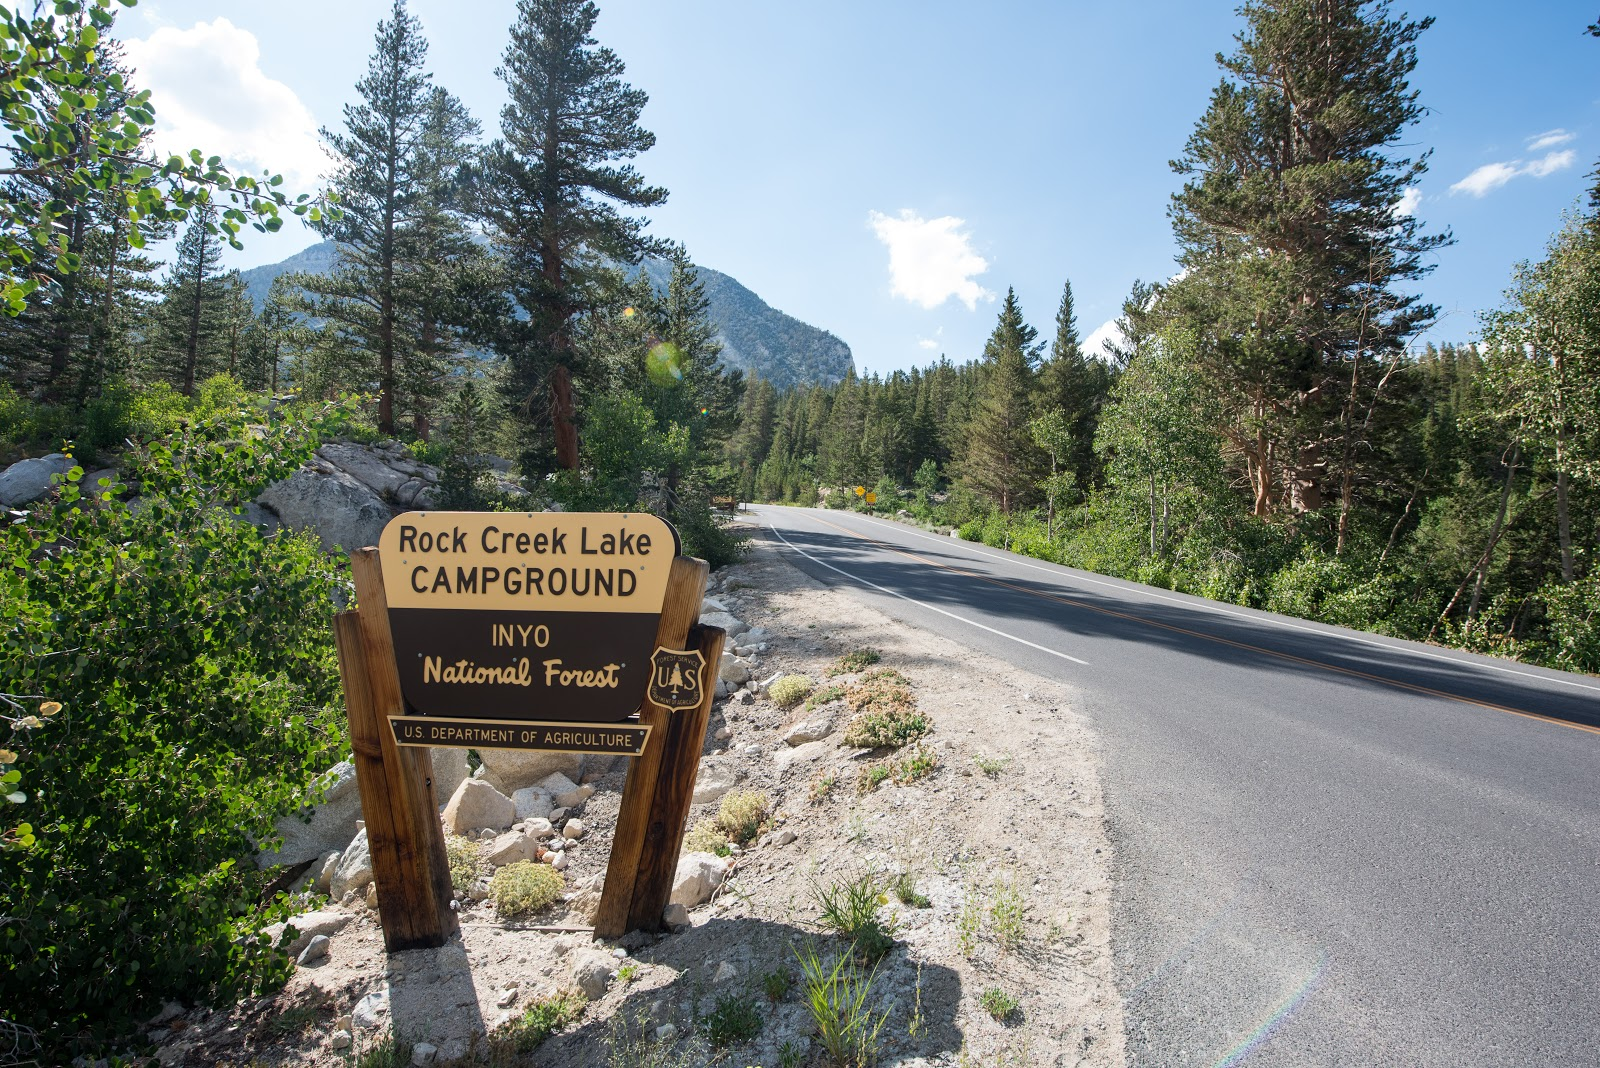 Rock Creek Campground sign and roadway